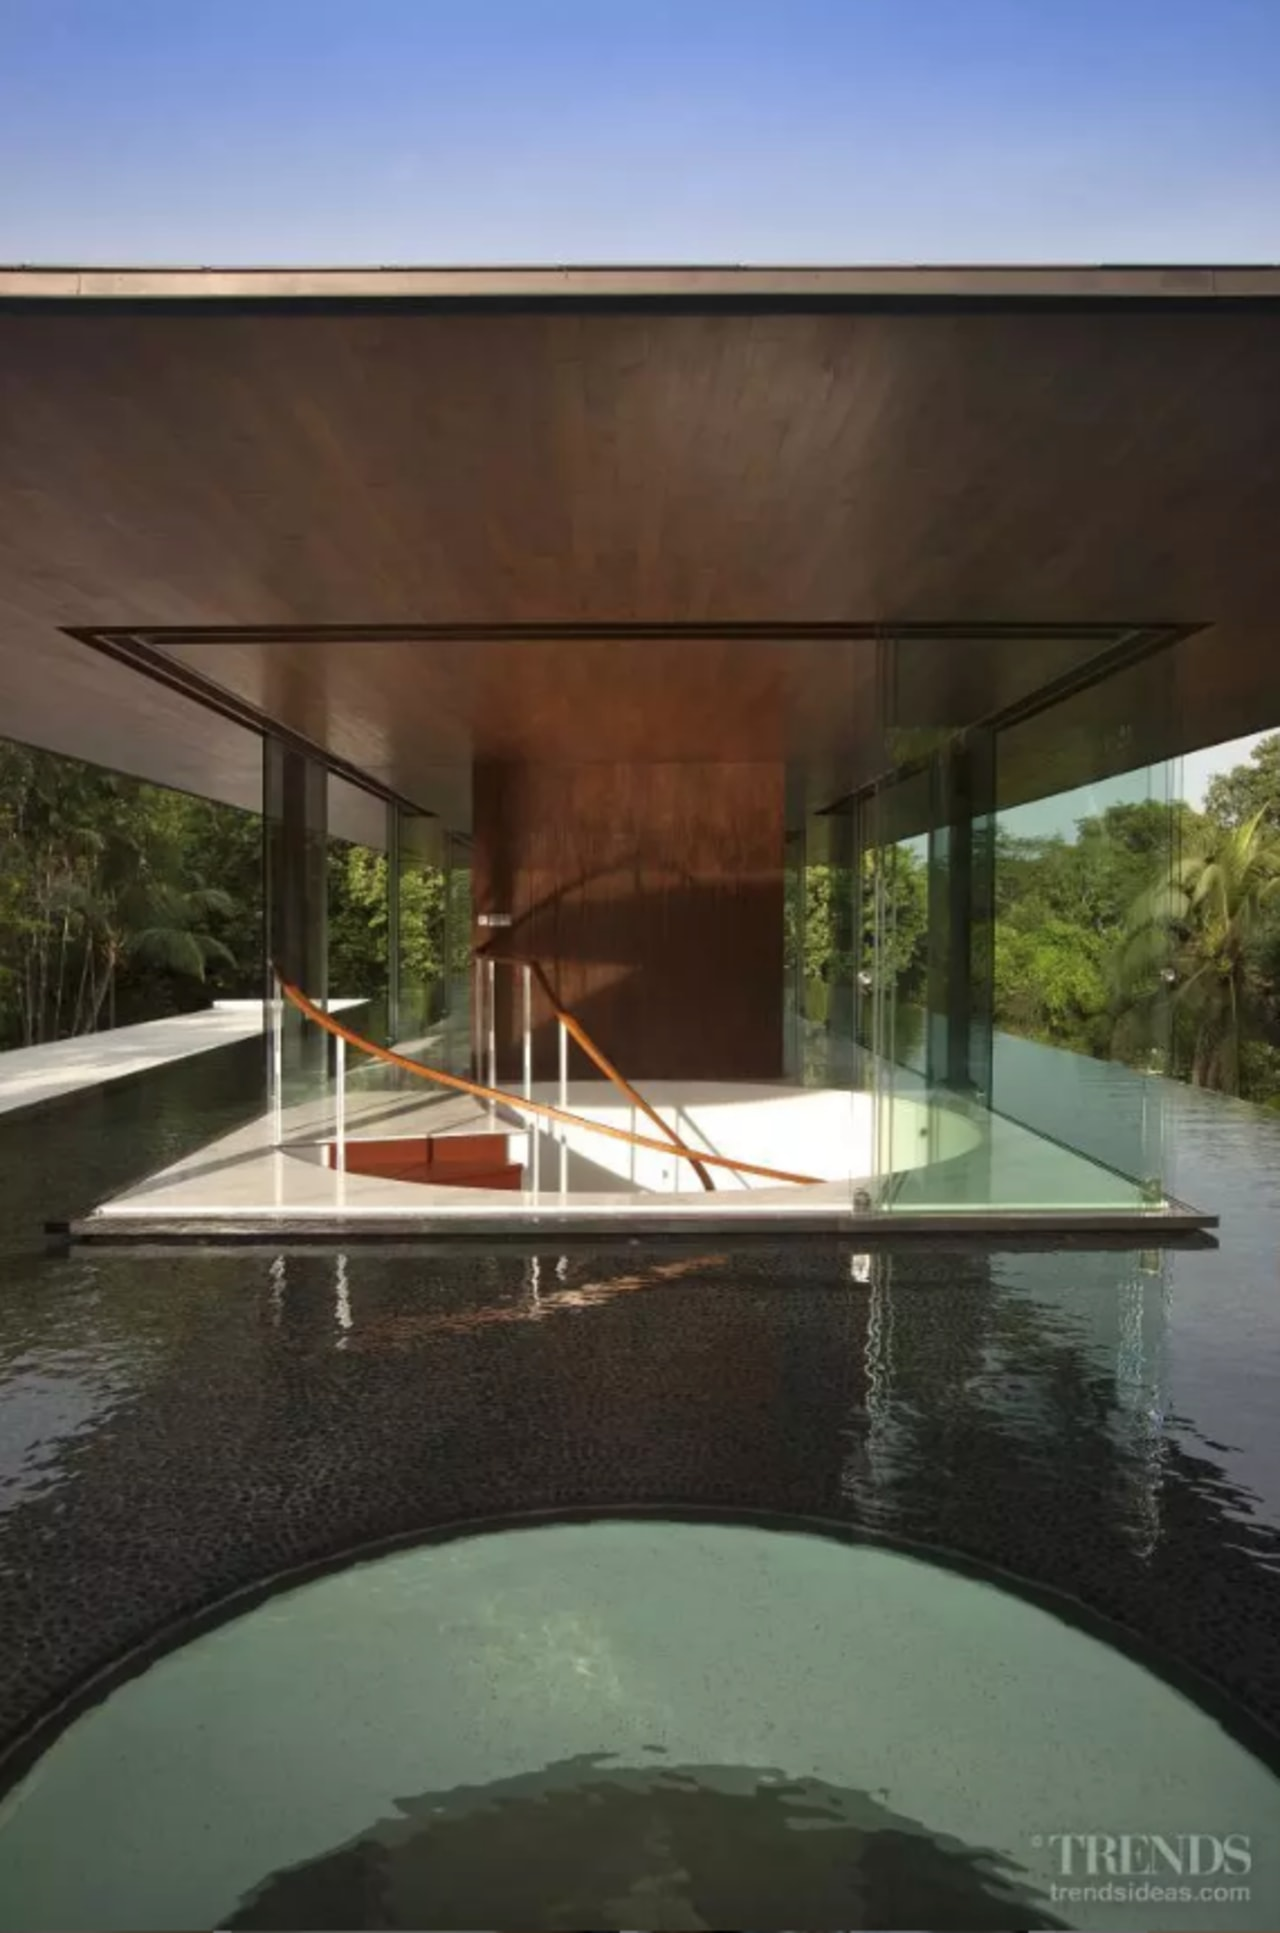 The entire corners of the living pavilion can architecture, building, design, home, house, leisure, pavilion, property, real estate, shade, water, black